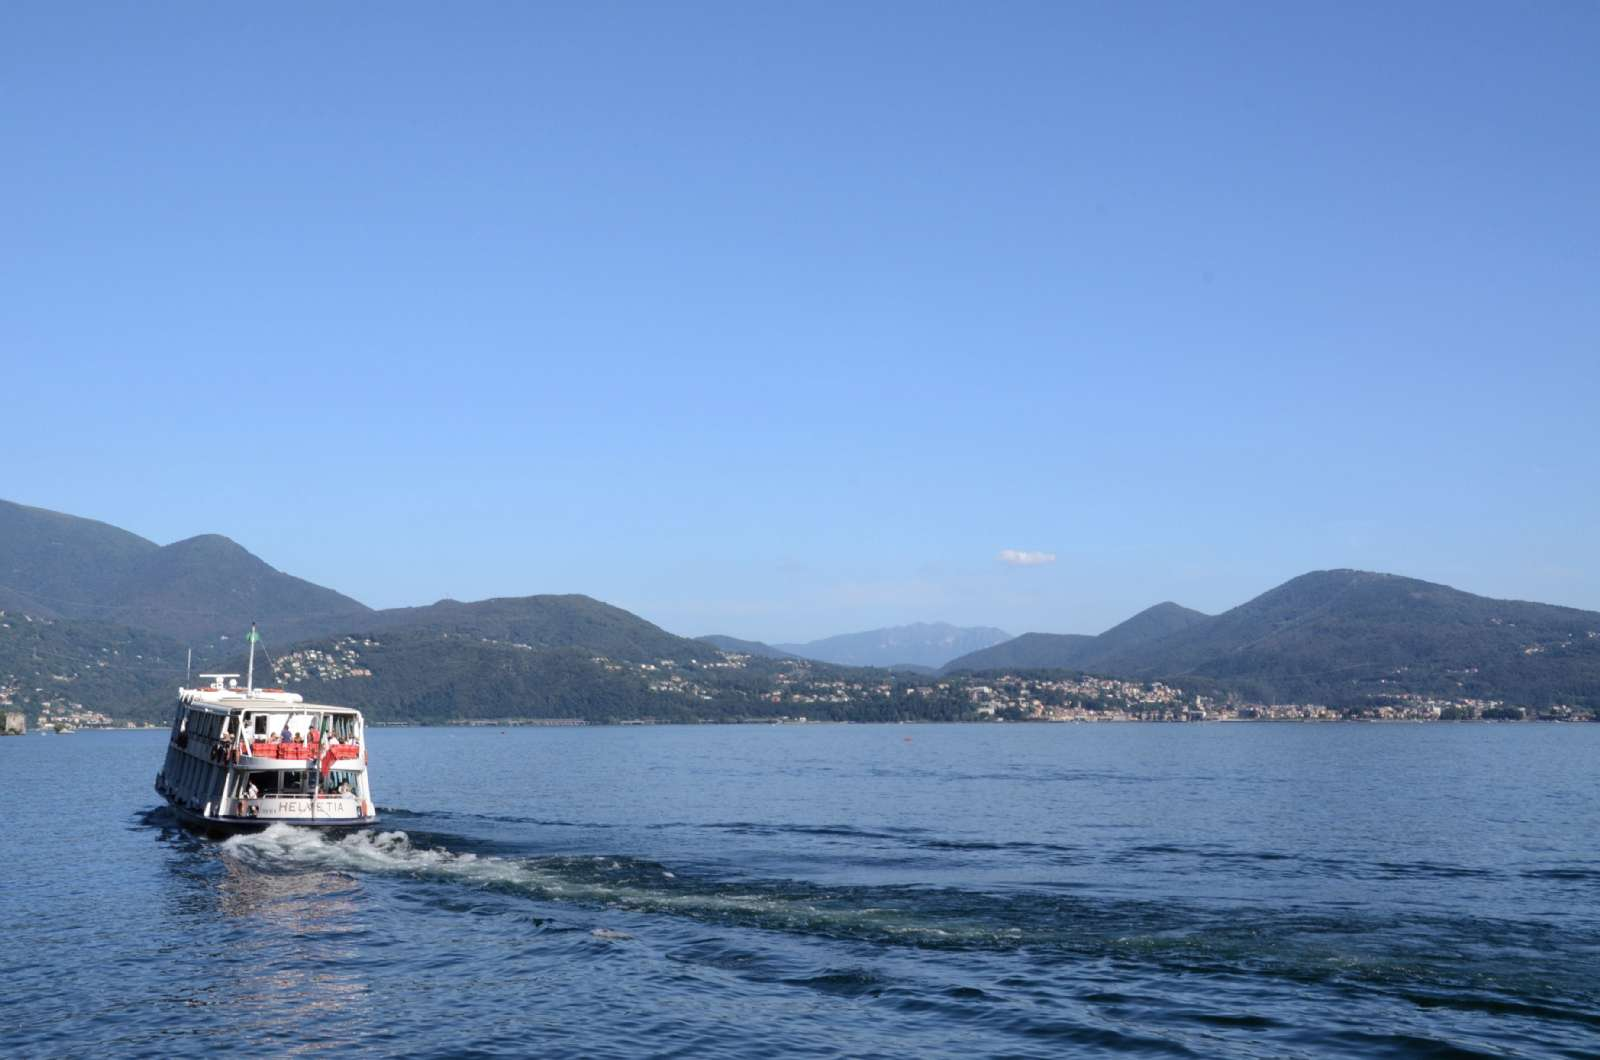 Sail between the beautiful towns on Lake Como